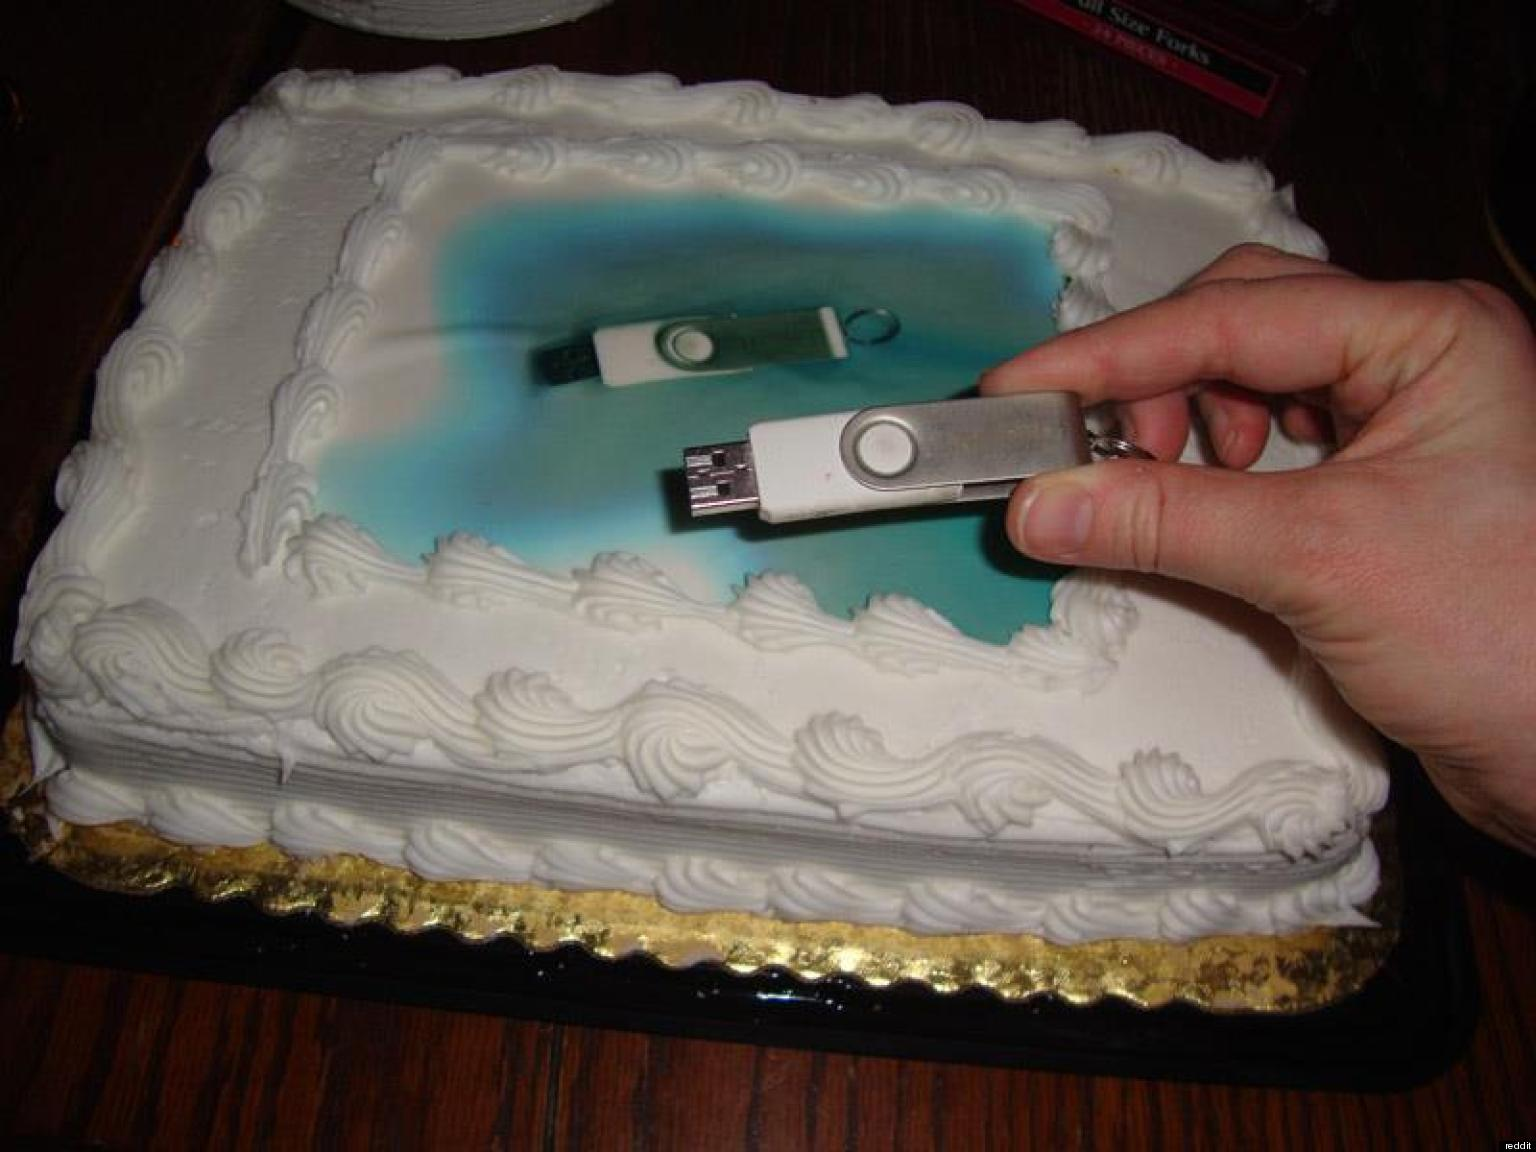 Usb Cake Mistake Baker Takes Instructions Quite Literally